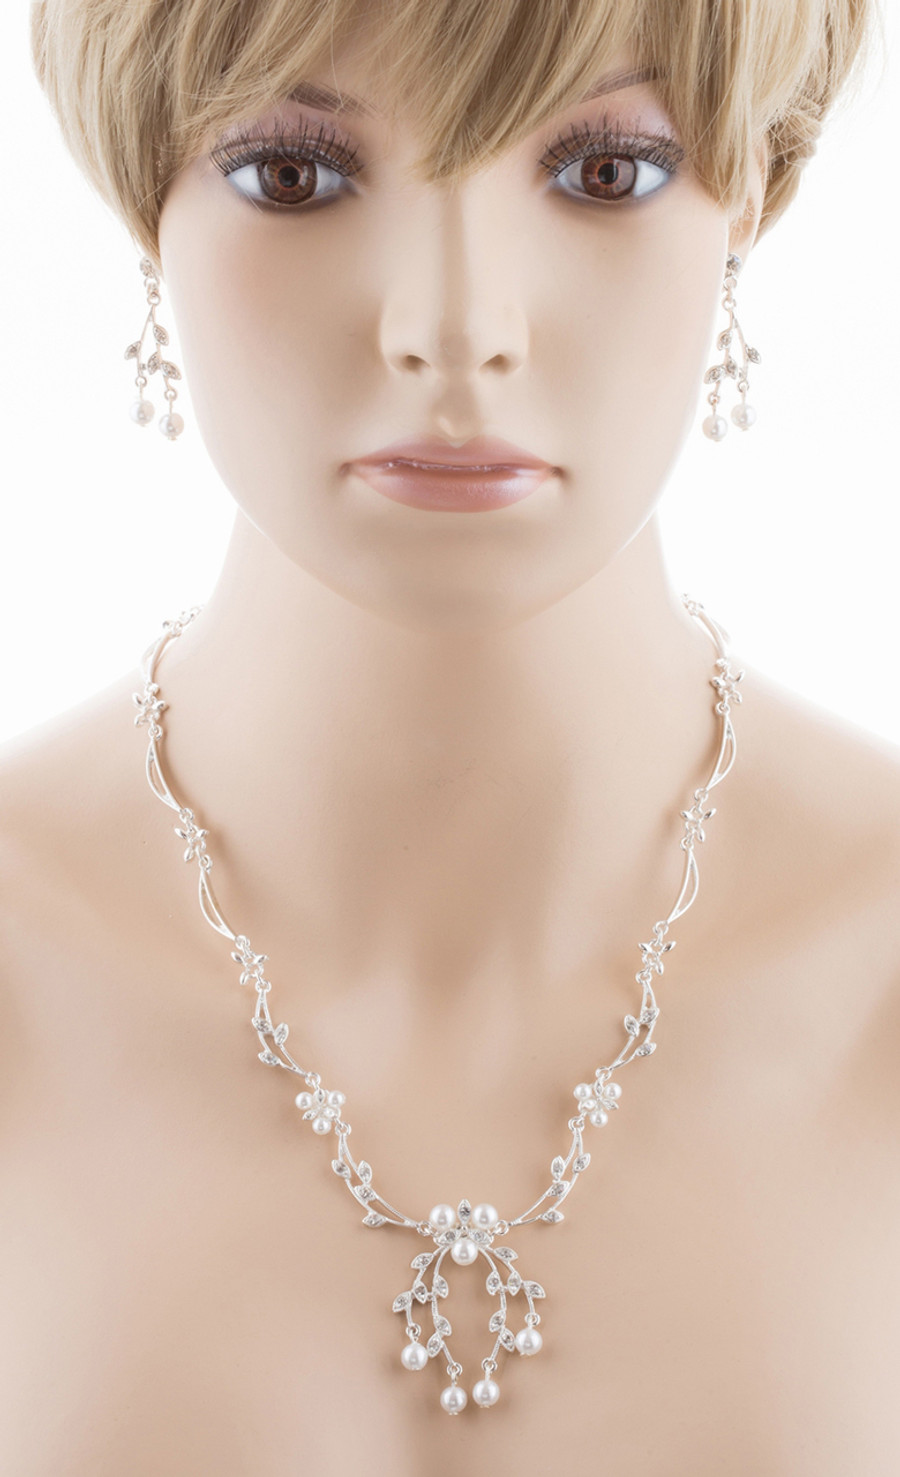 Bridal Wedding Jewelry Set Crystal Rhinestone Floral Pearl Necklace Silver